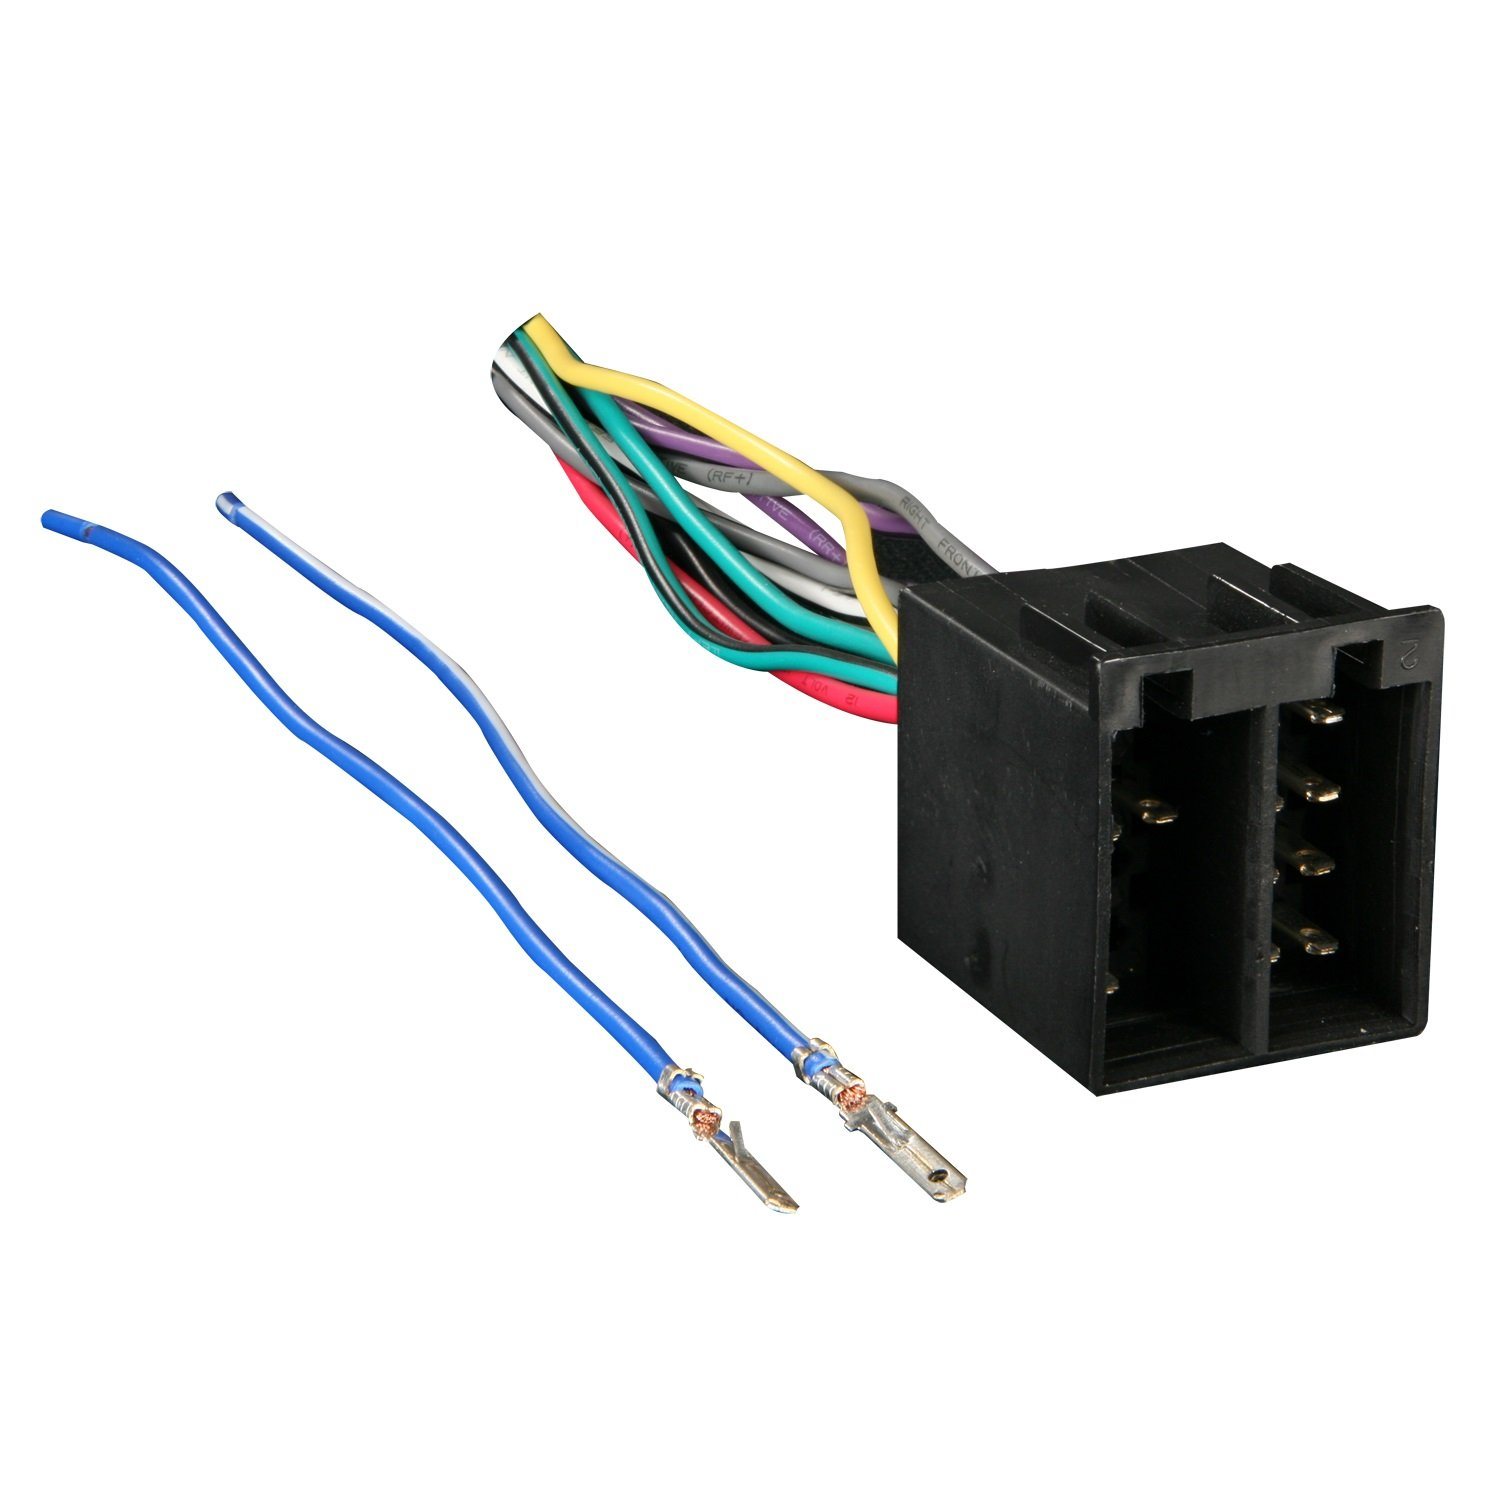 61btua5kg4L._SL1500_ amazon com metra 70 1783 radio wiring harness for smart car car  at webbmarketing.co